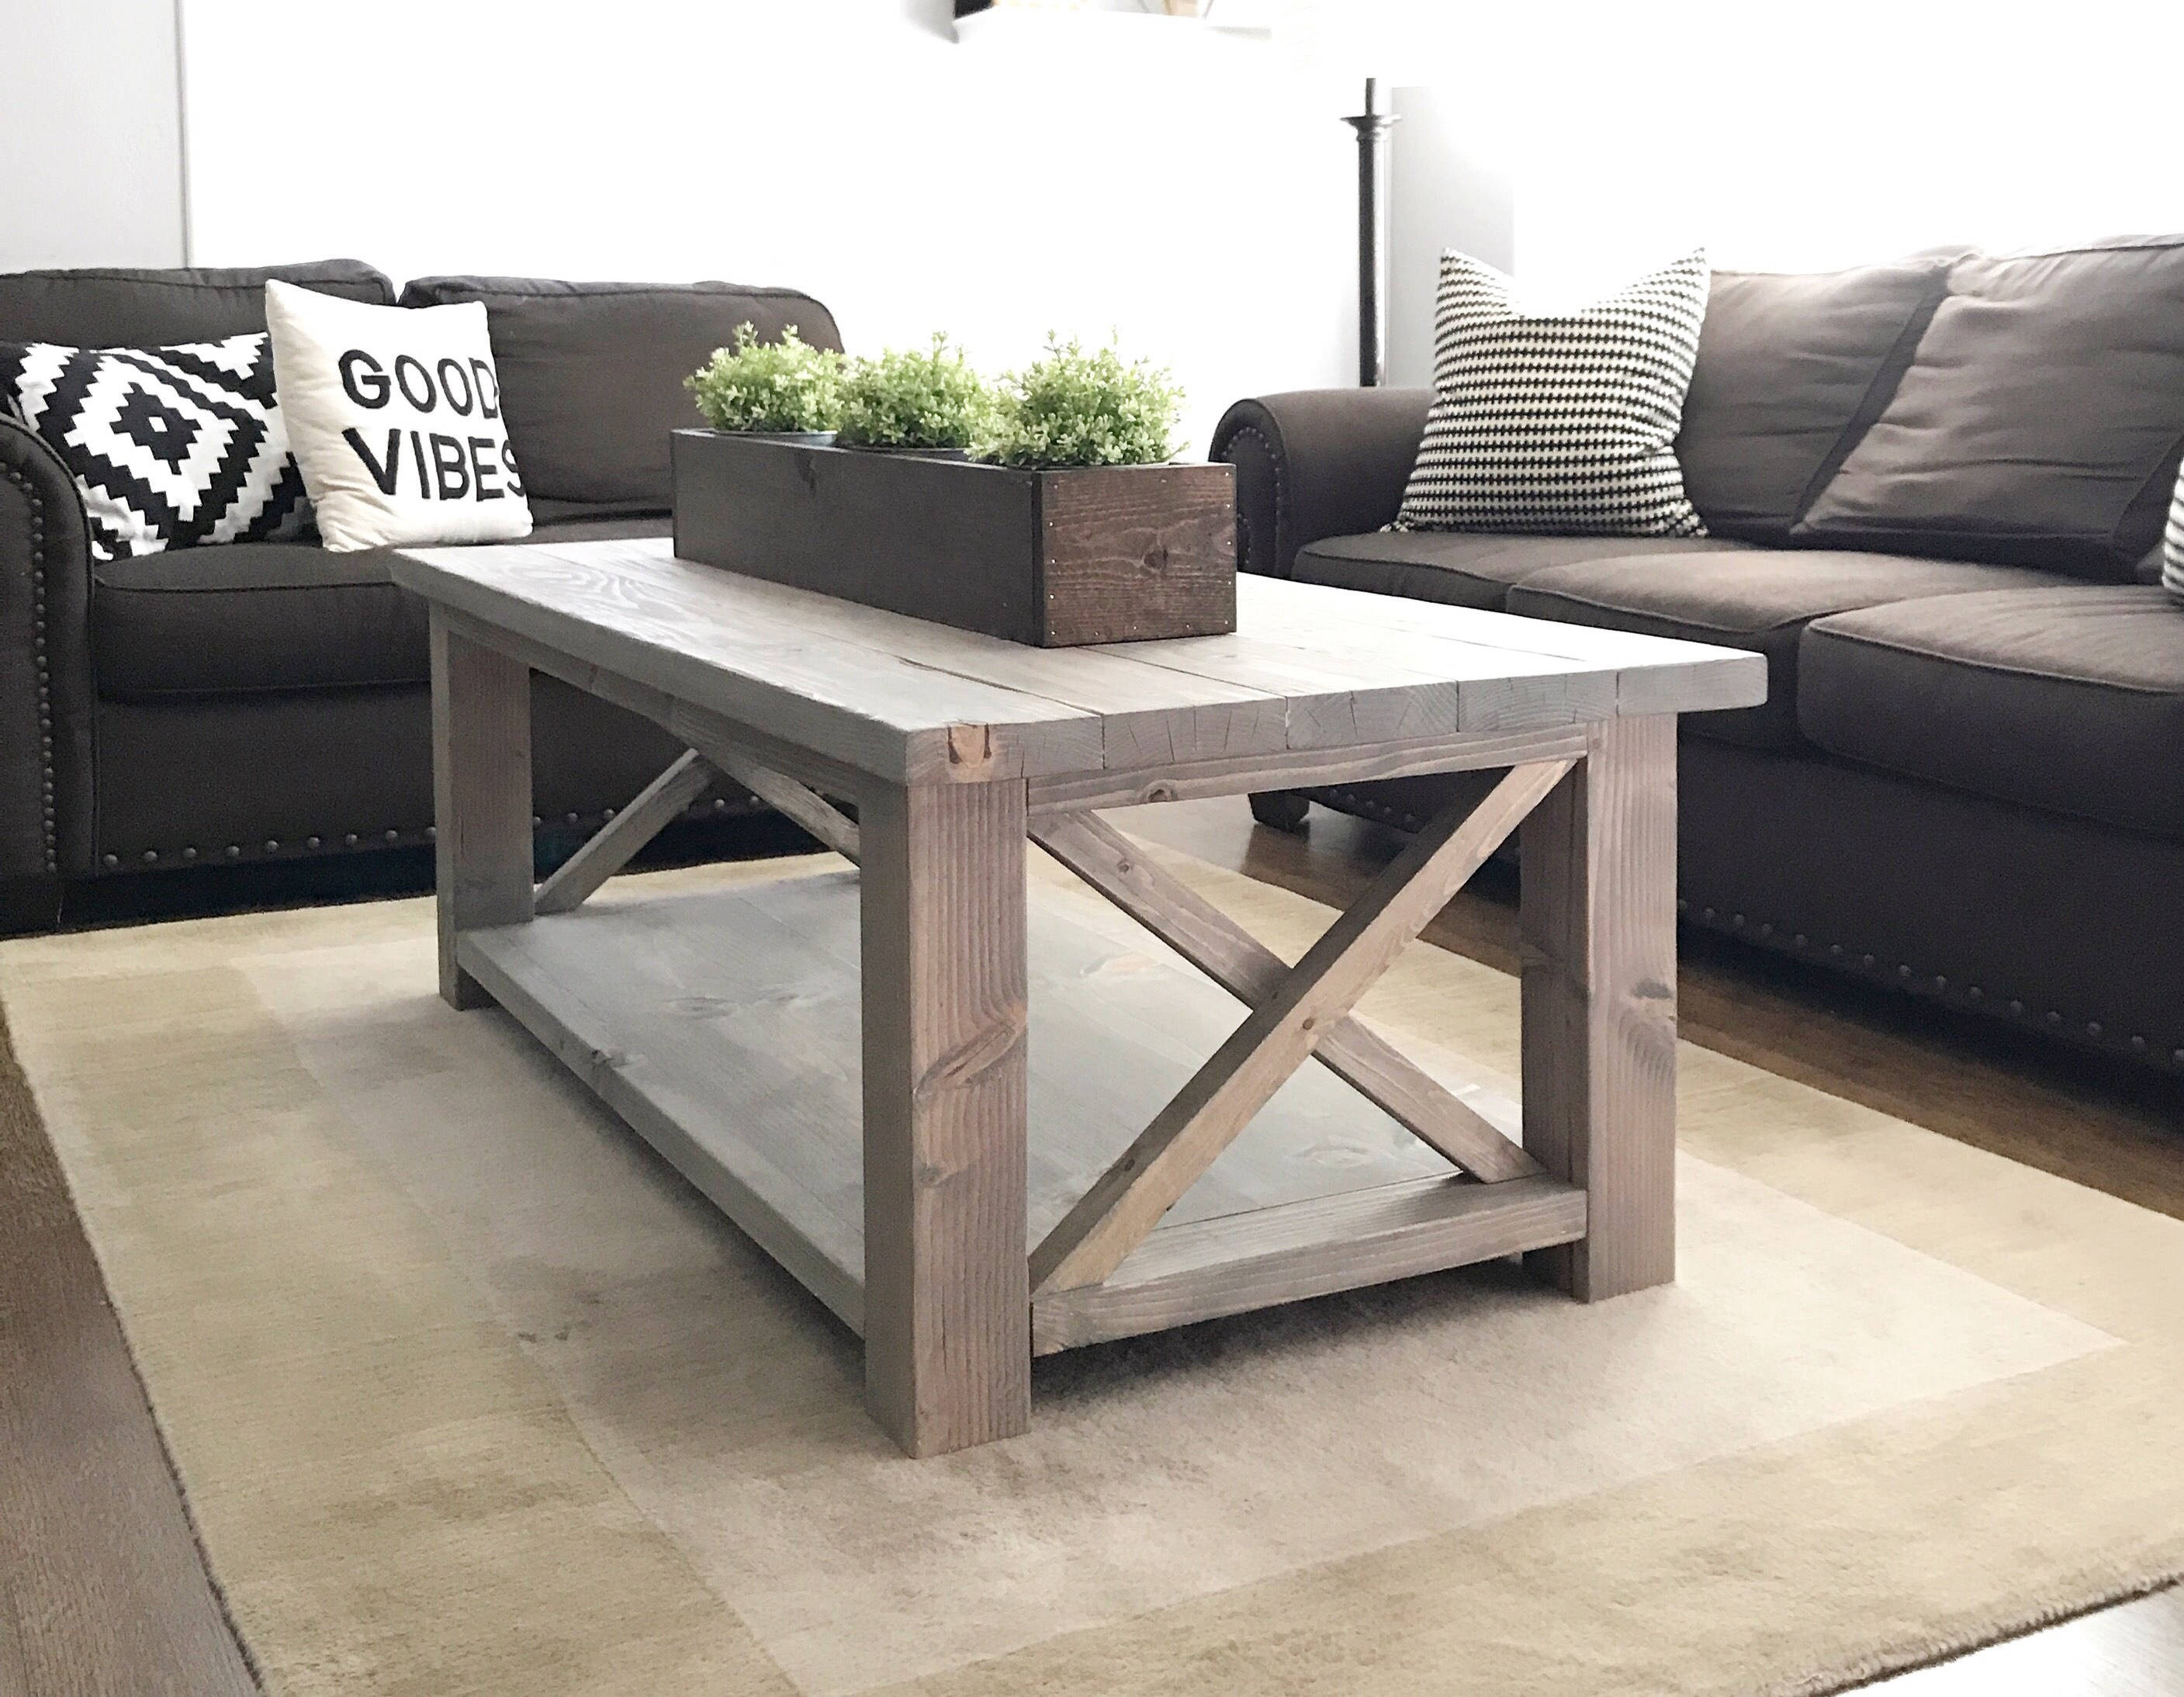 Best ideas about Farmhouse Coffee Table . Save or Pin Rustic Coffee TableFarmhouse Coffee Table Now.